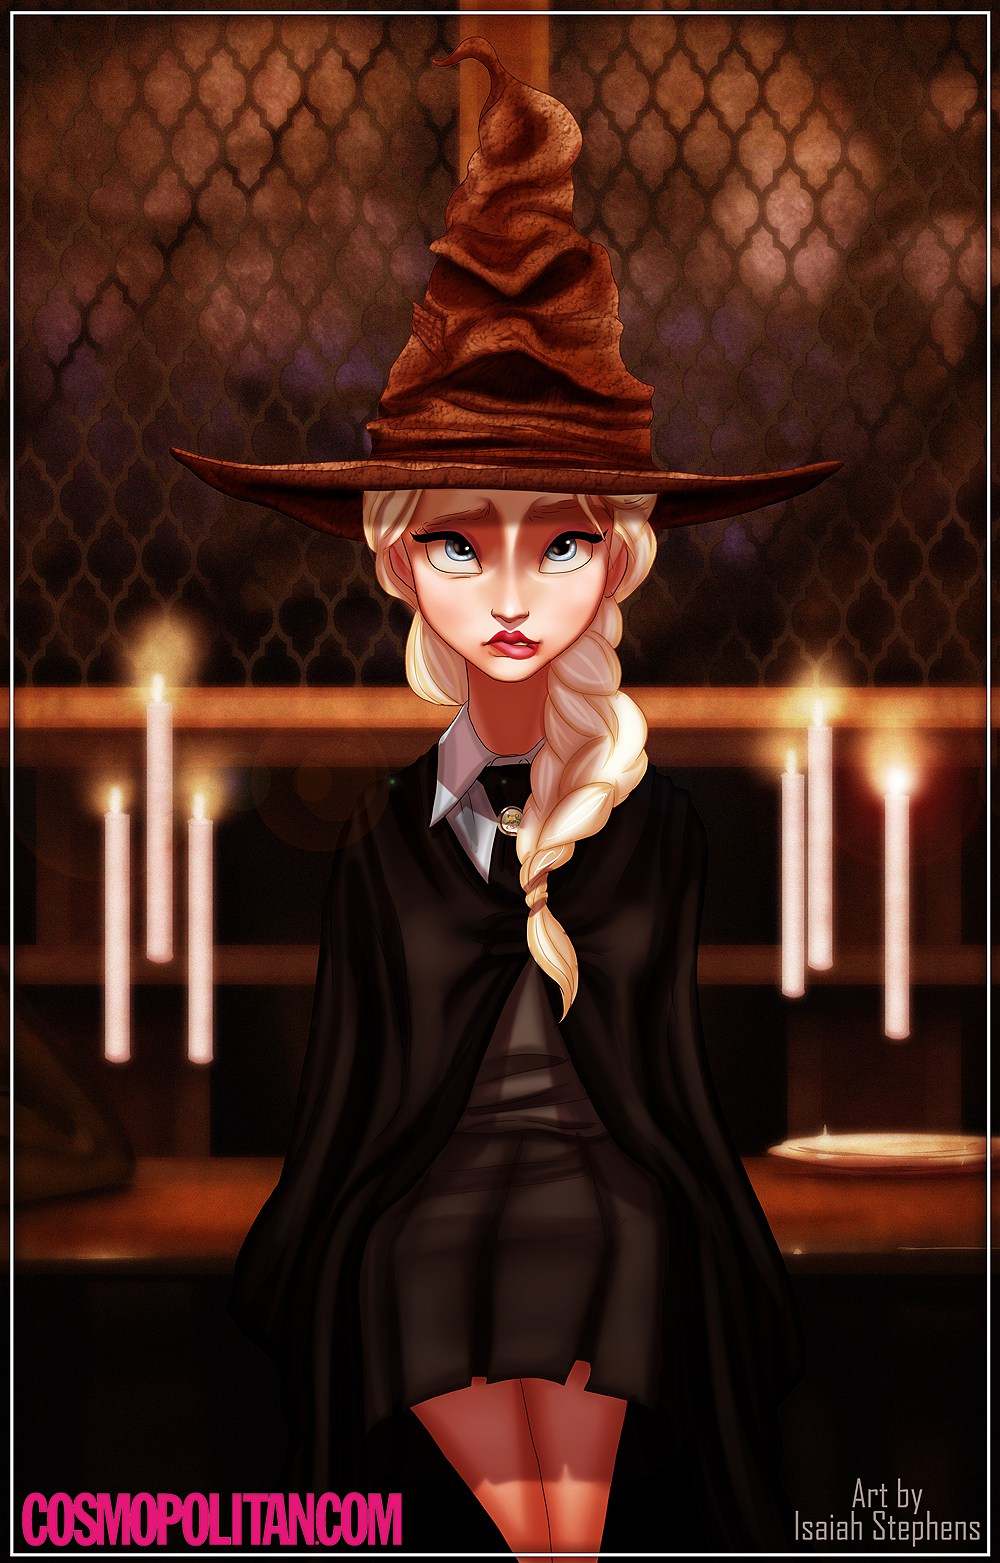 Elsa does not look happy with being put into Slytherin